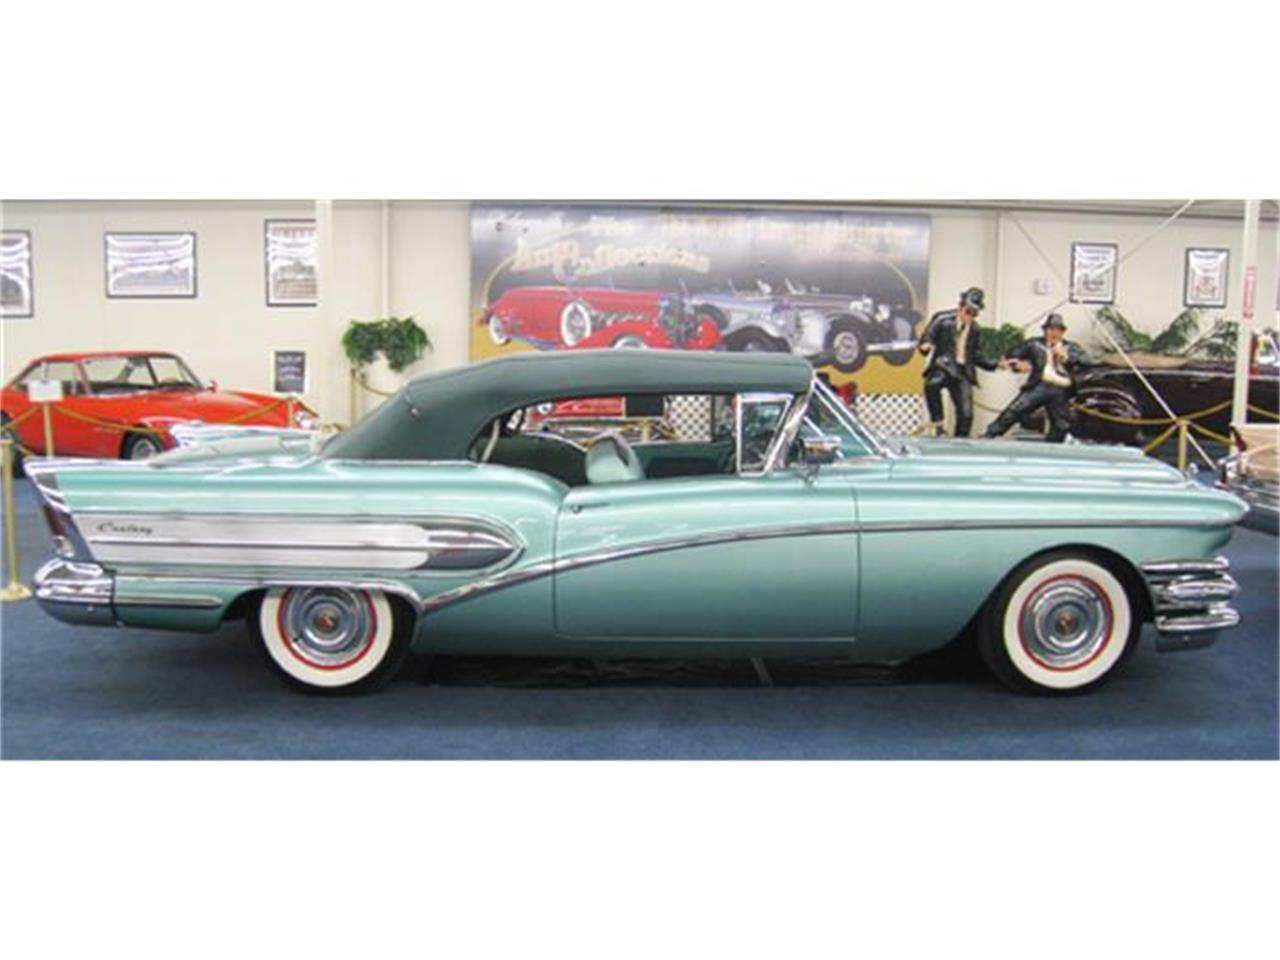 Large Picture of Classic '58 Buick Century located in Las Vegas Nevada Auction Vehicle Offered by The Auto Collections - FKY5